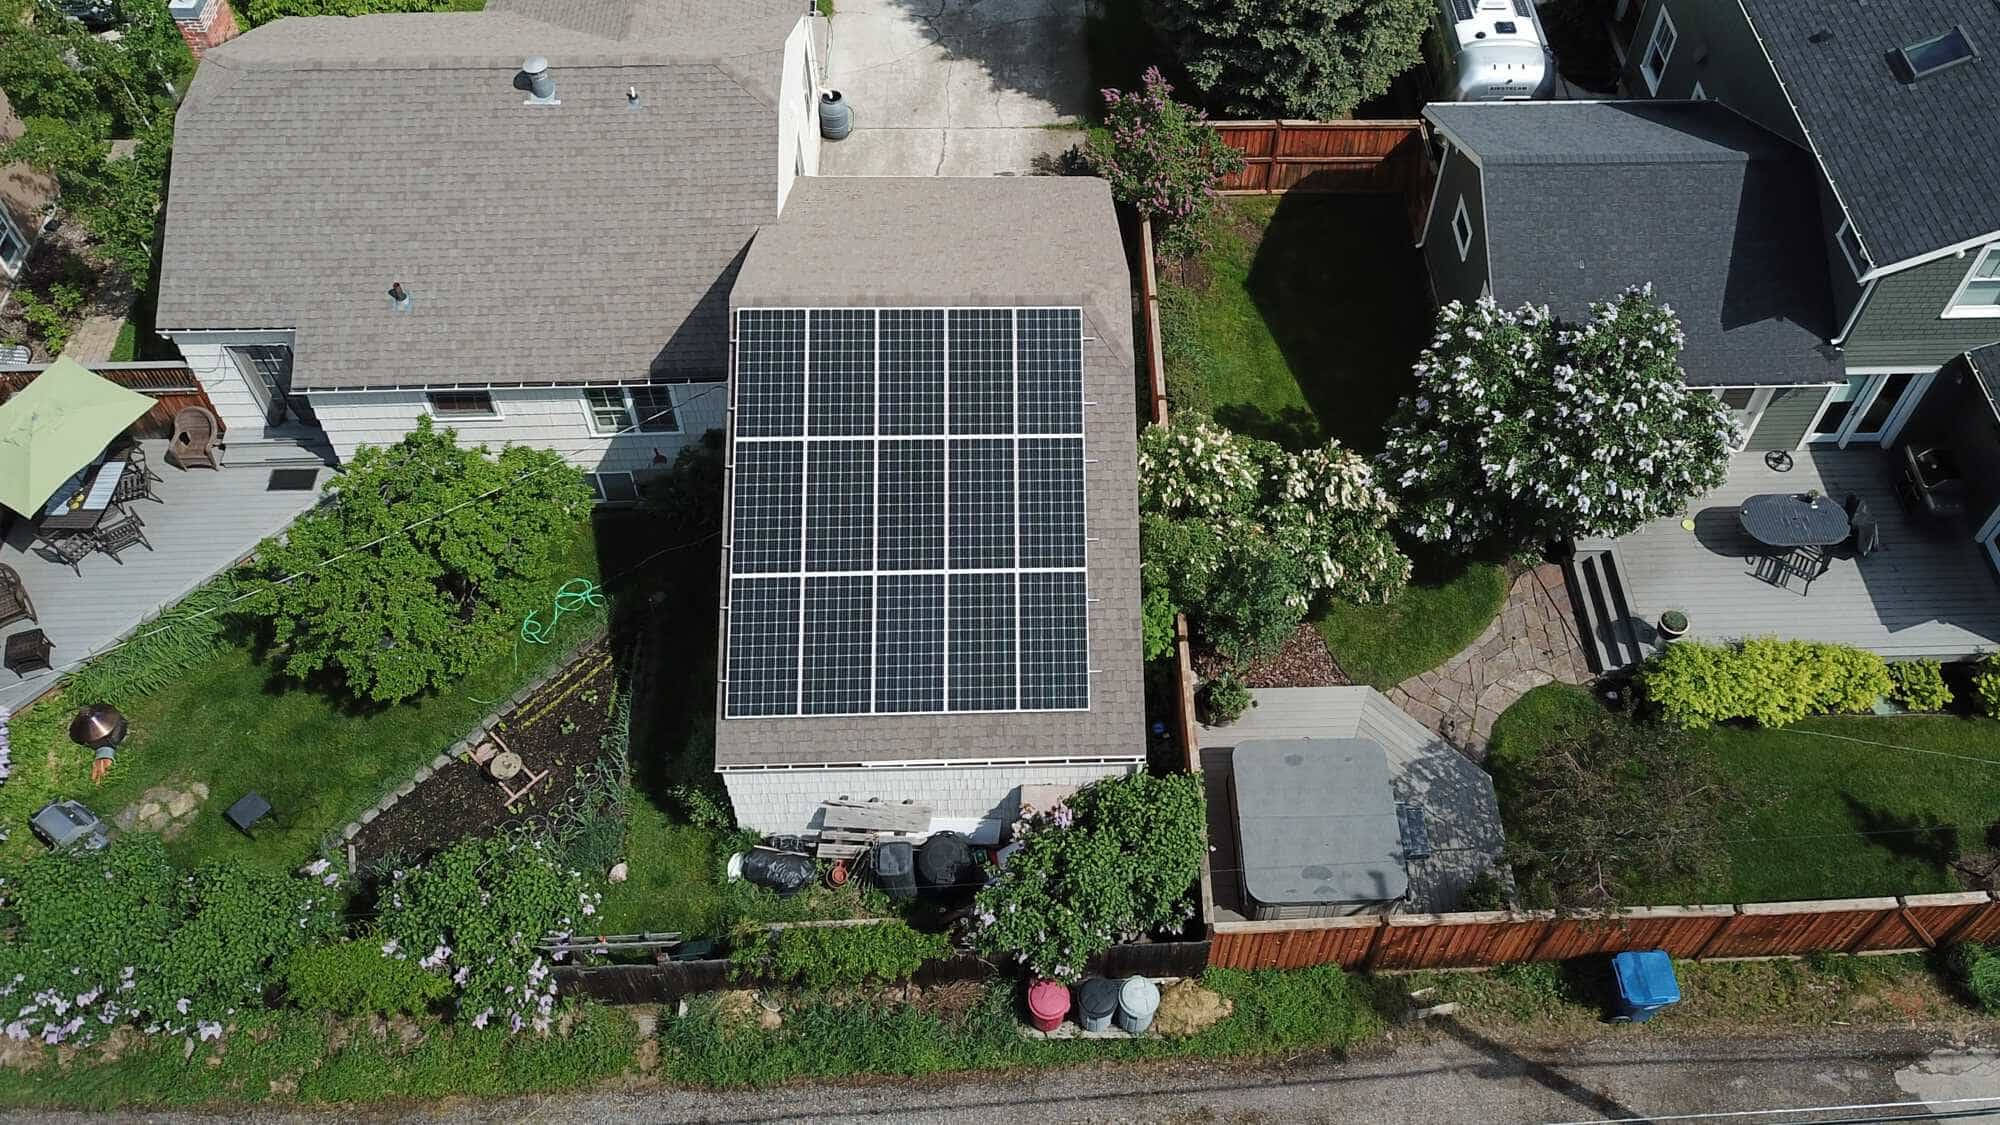 16 Solar Panel on Roof In Montana